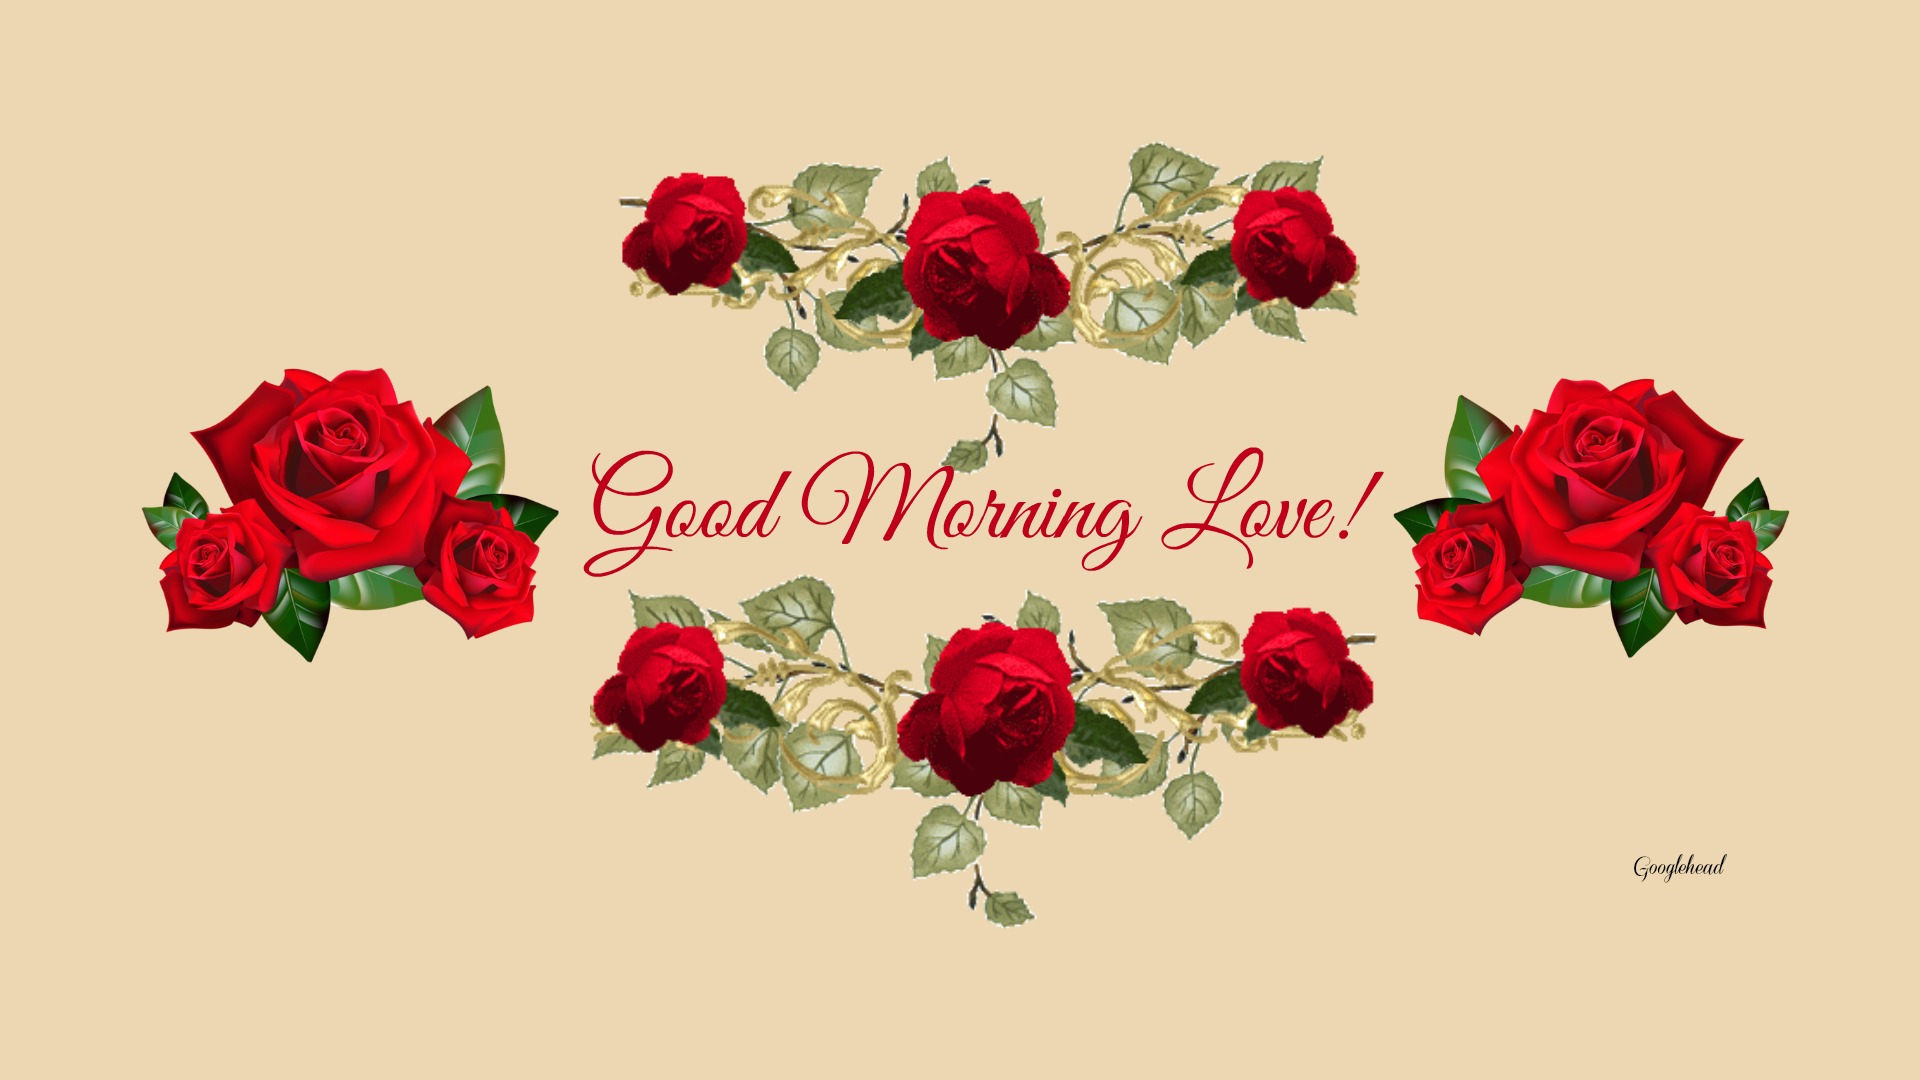 Good Morning New Love Wallpaper : Good Morning wallpapers, Pictures, Images